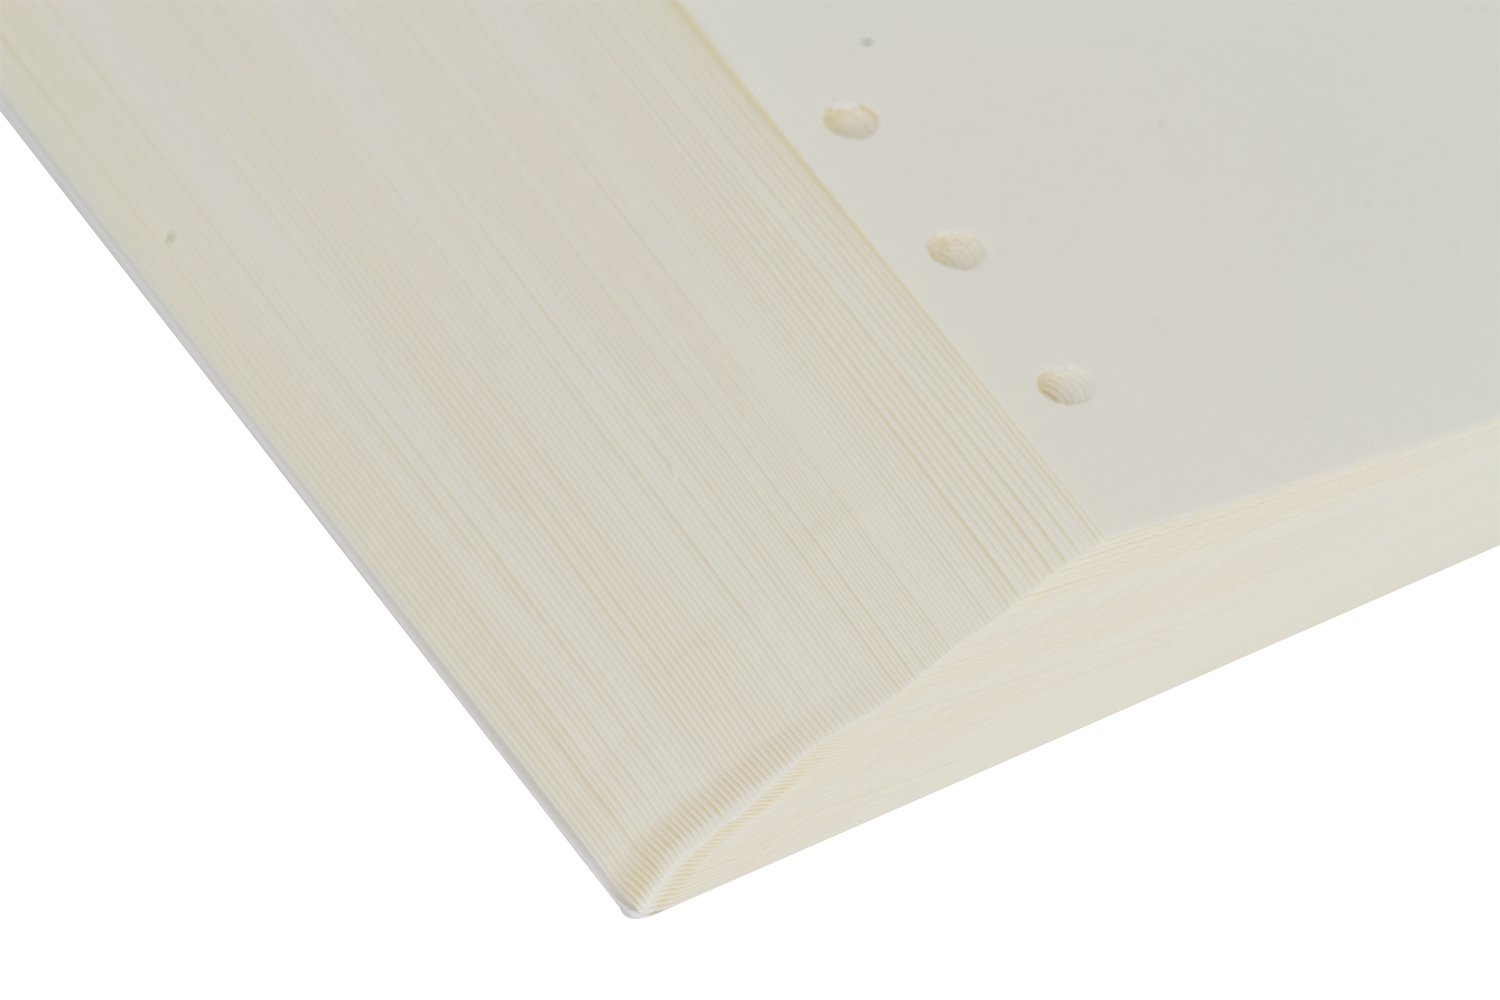 8.3 x 11.5 A4 Kraft Refill Paper 4 Hole Punched Filler Paper Refills for A4 Loose Leaf Notebook Travel Journal Personal Diary Planner Binder Scrapbook 100 Sheet//200 Page